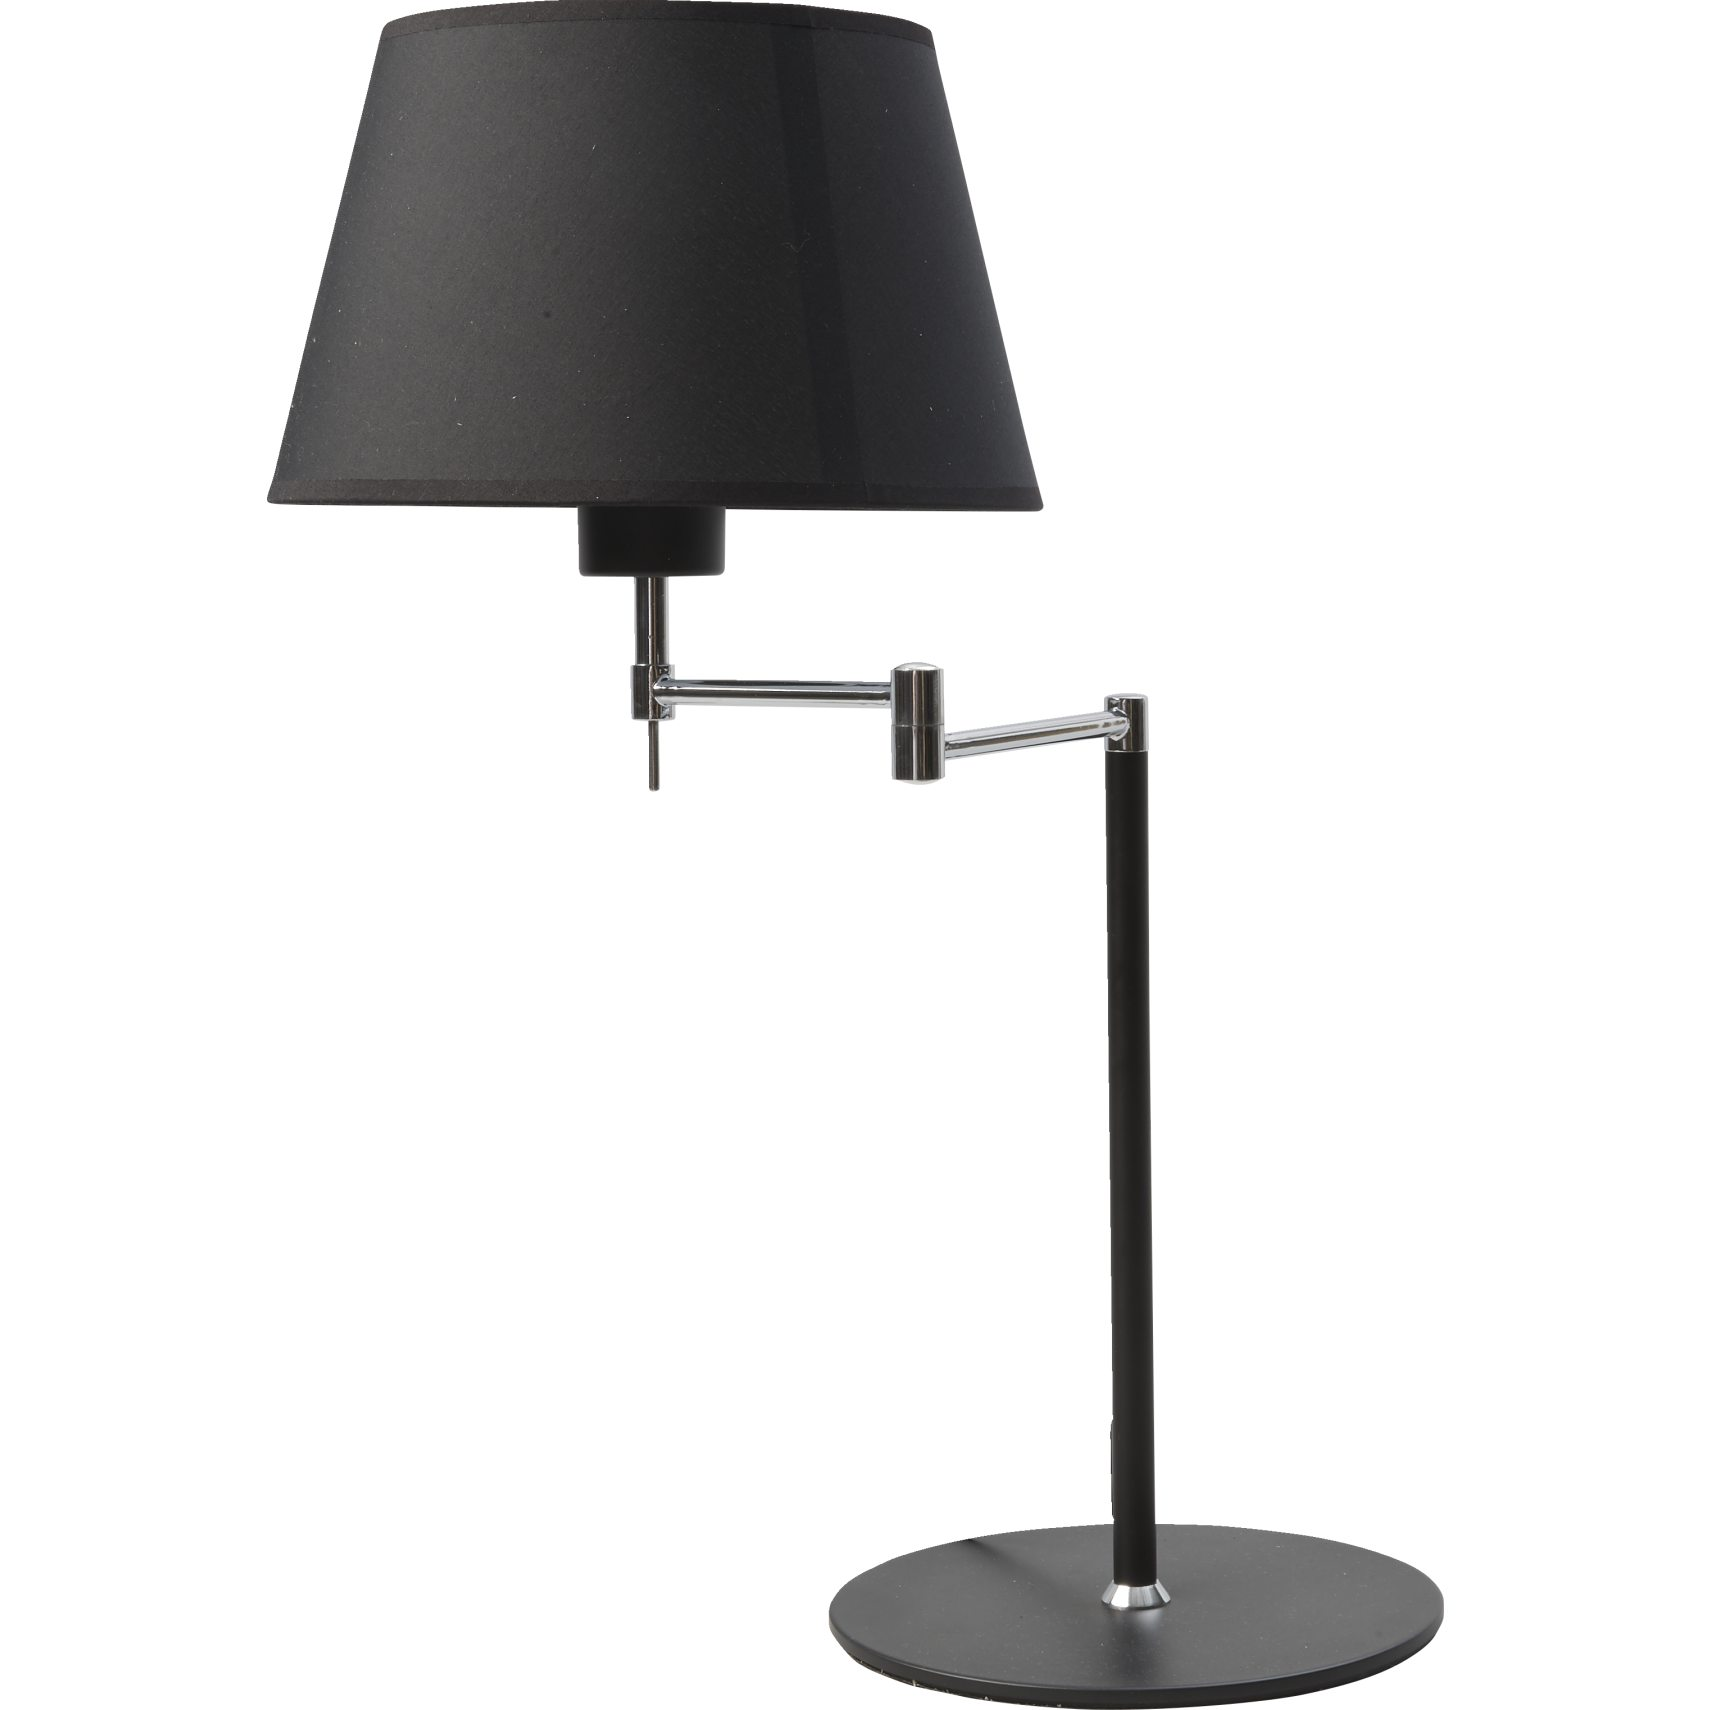 Swing Bordlampe - Sort stofskærm og sort/krom metal base og arm